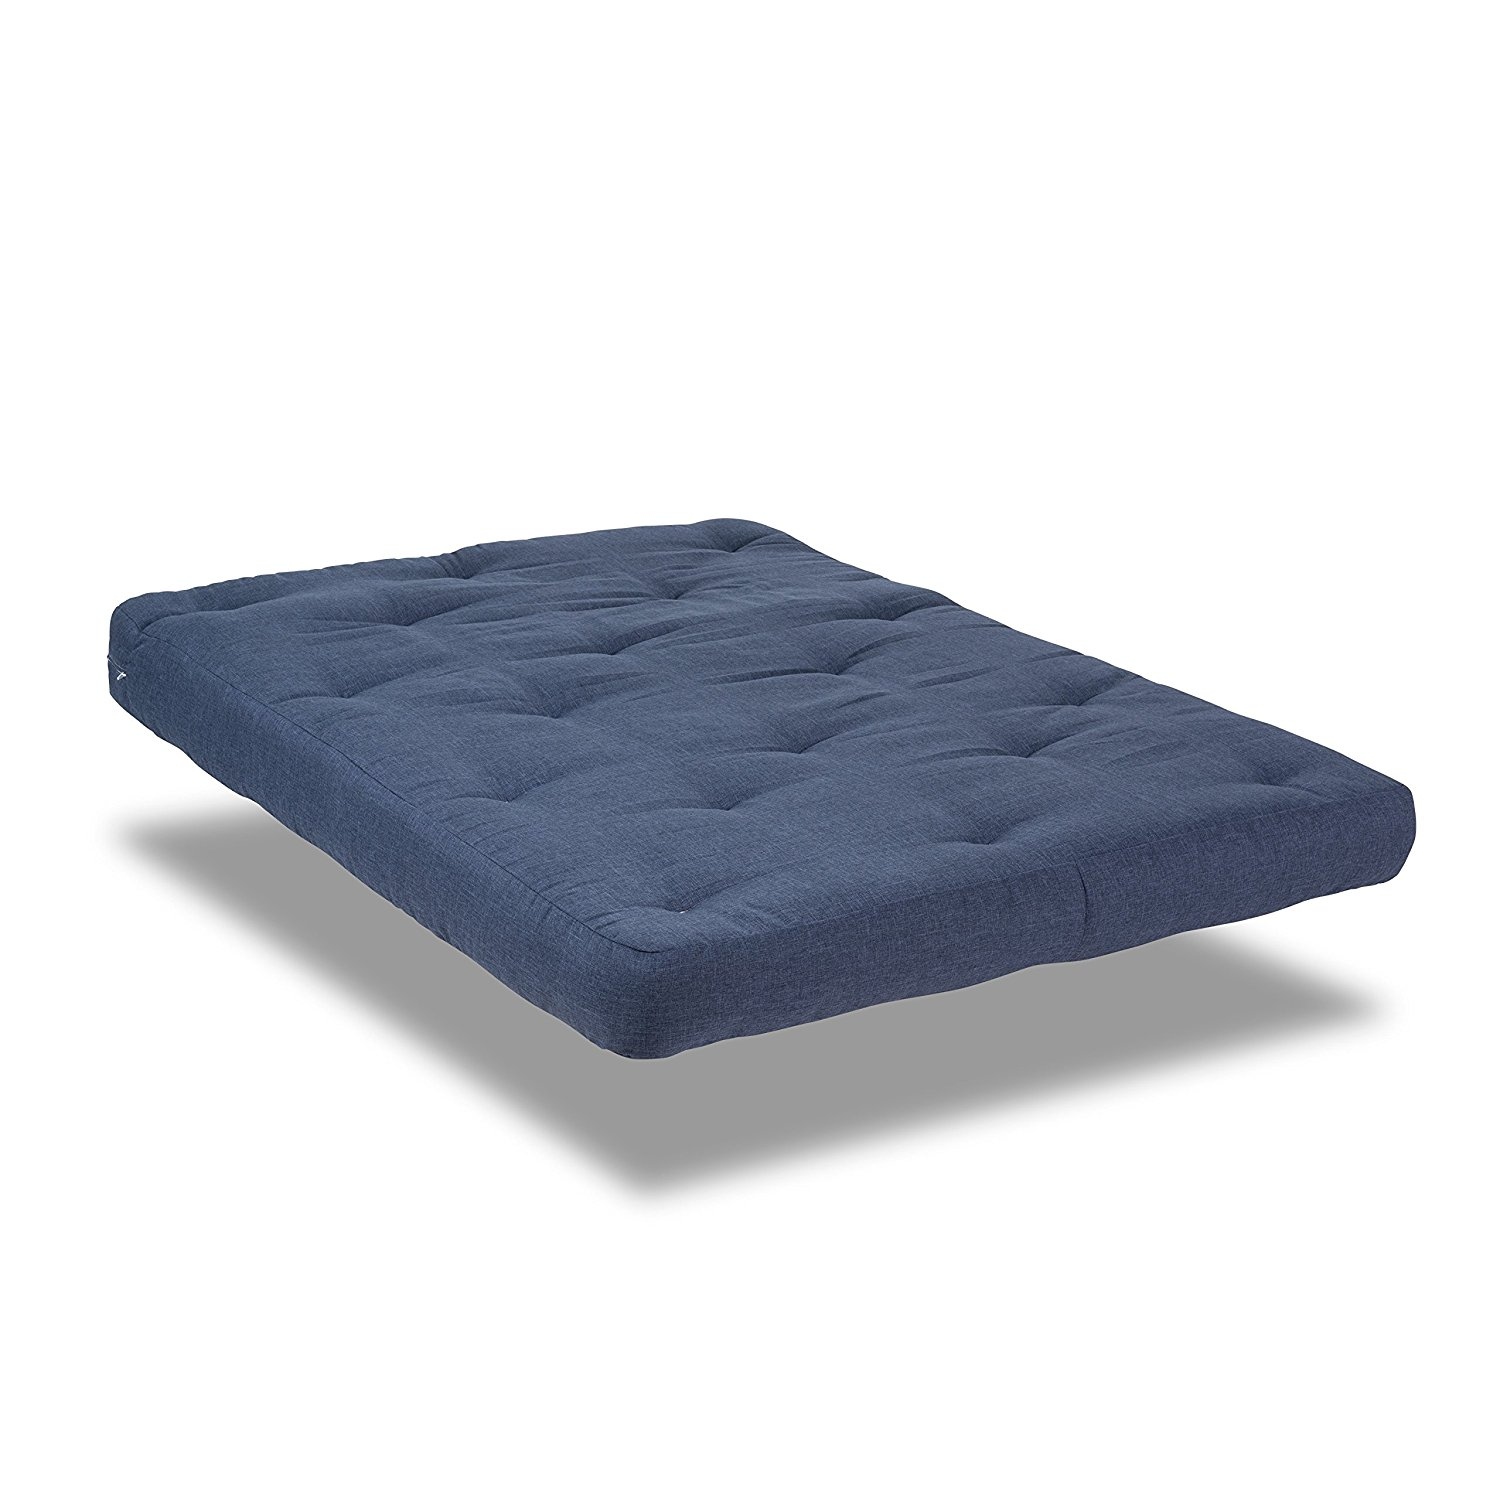 Serta Willow Duct Cotton Full Futon Mattress Review